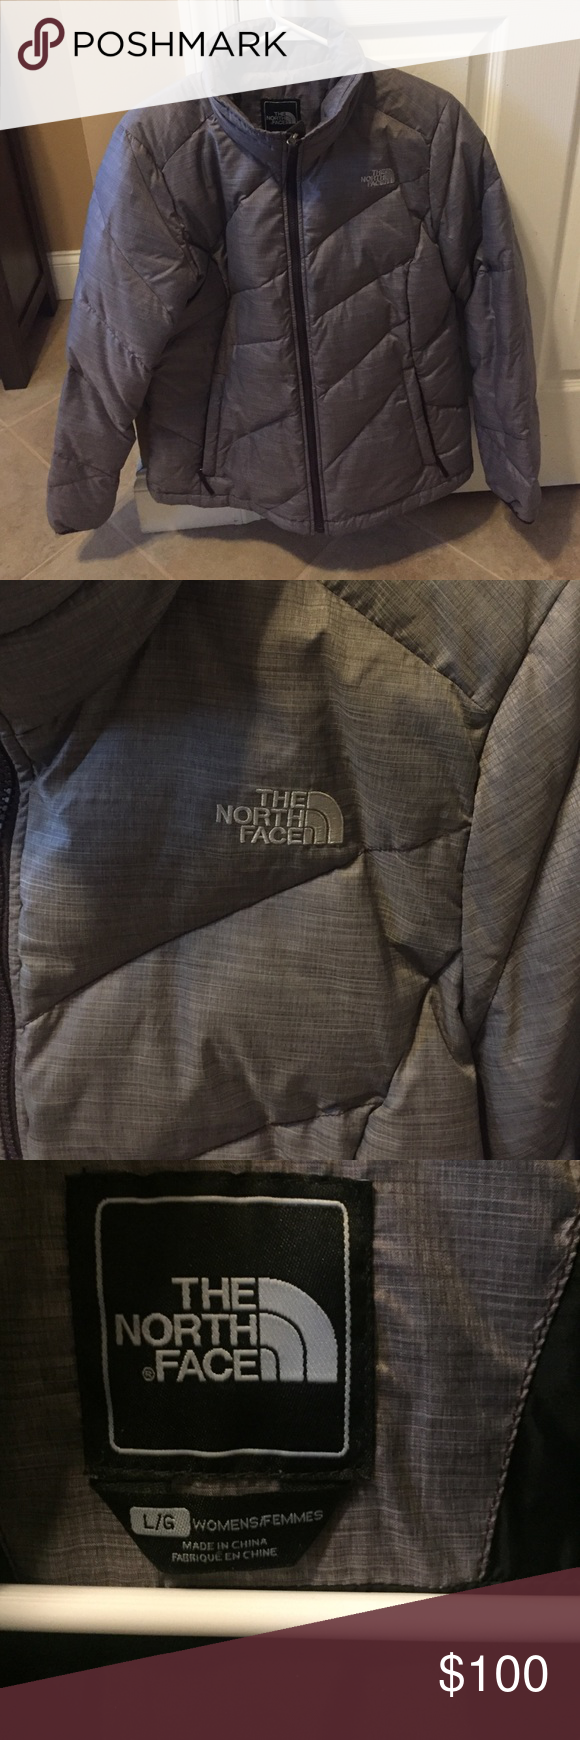 The North Face Women's Synthetic Down Jacket Super cute synthetic puffy jacket. Elegant purple/gray color. EUC The North Face Jackets & Coats Puffers